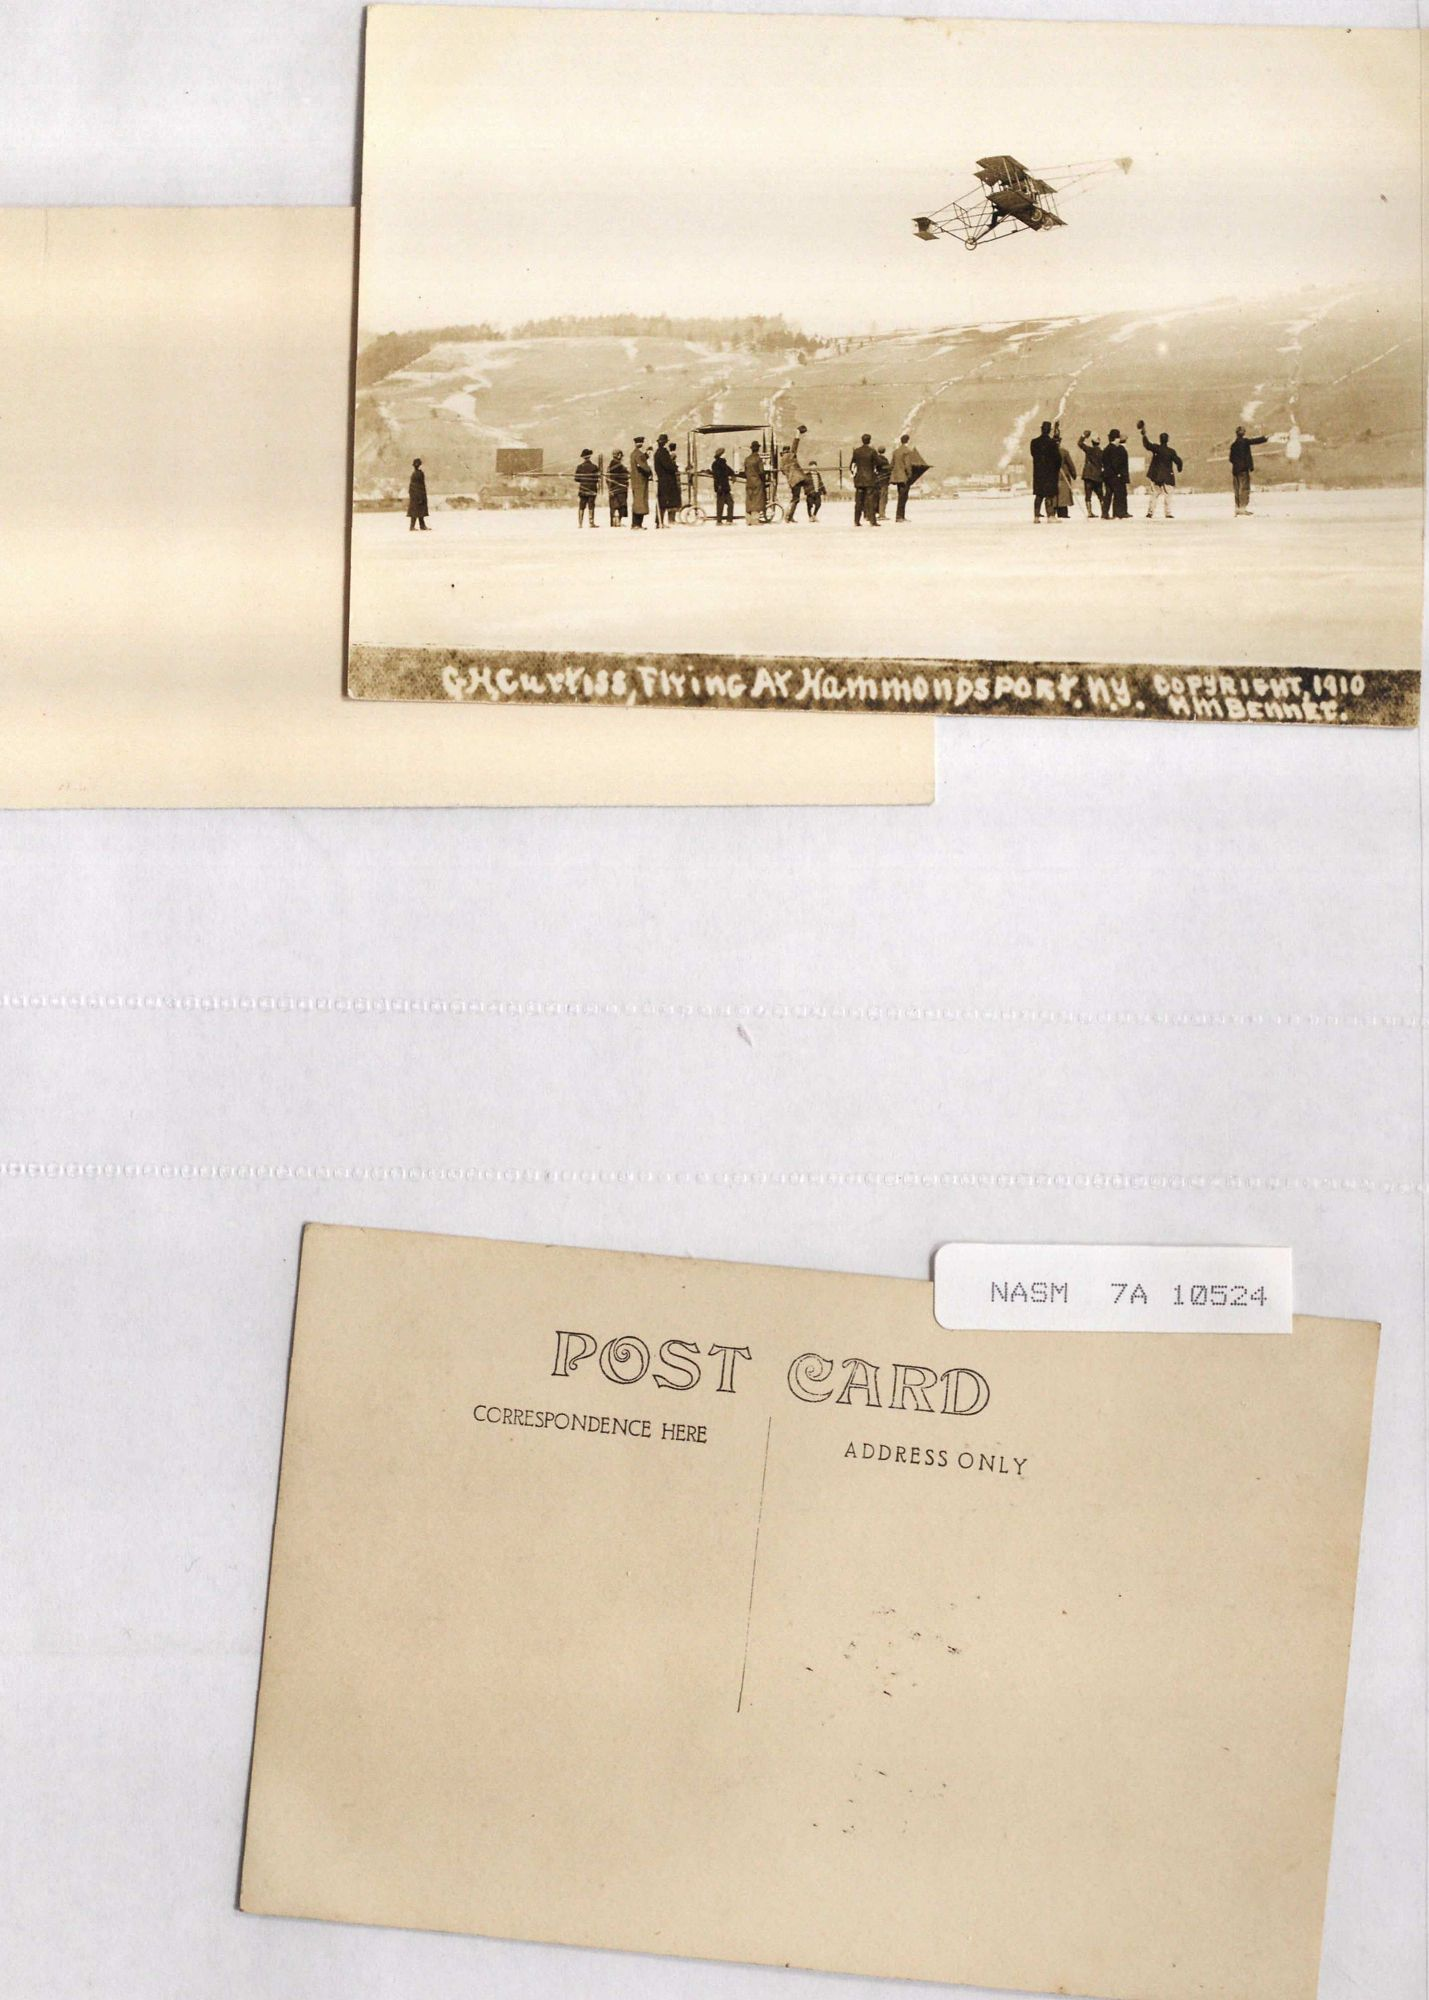 Glenn Curtiss Early Aviation Photography Collection